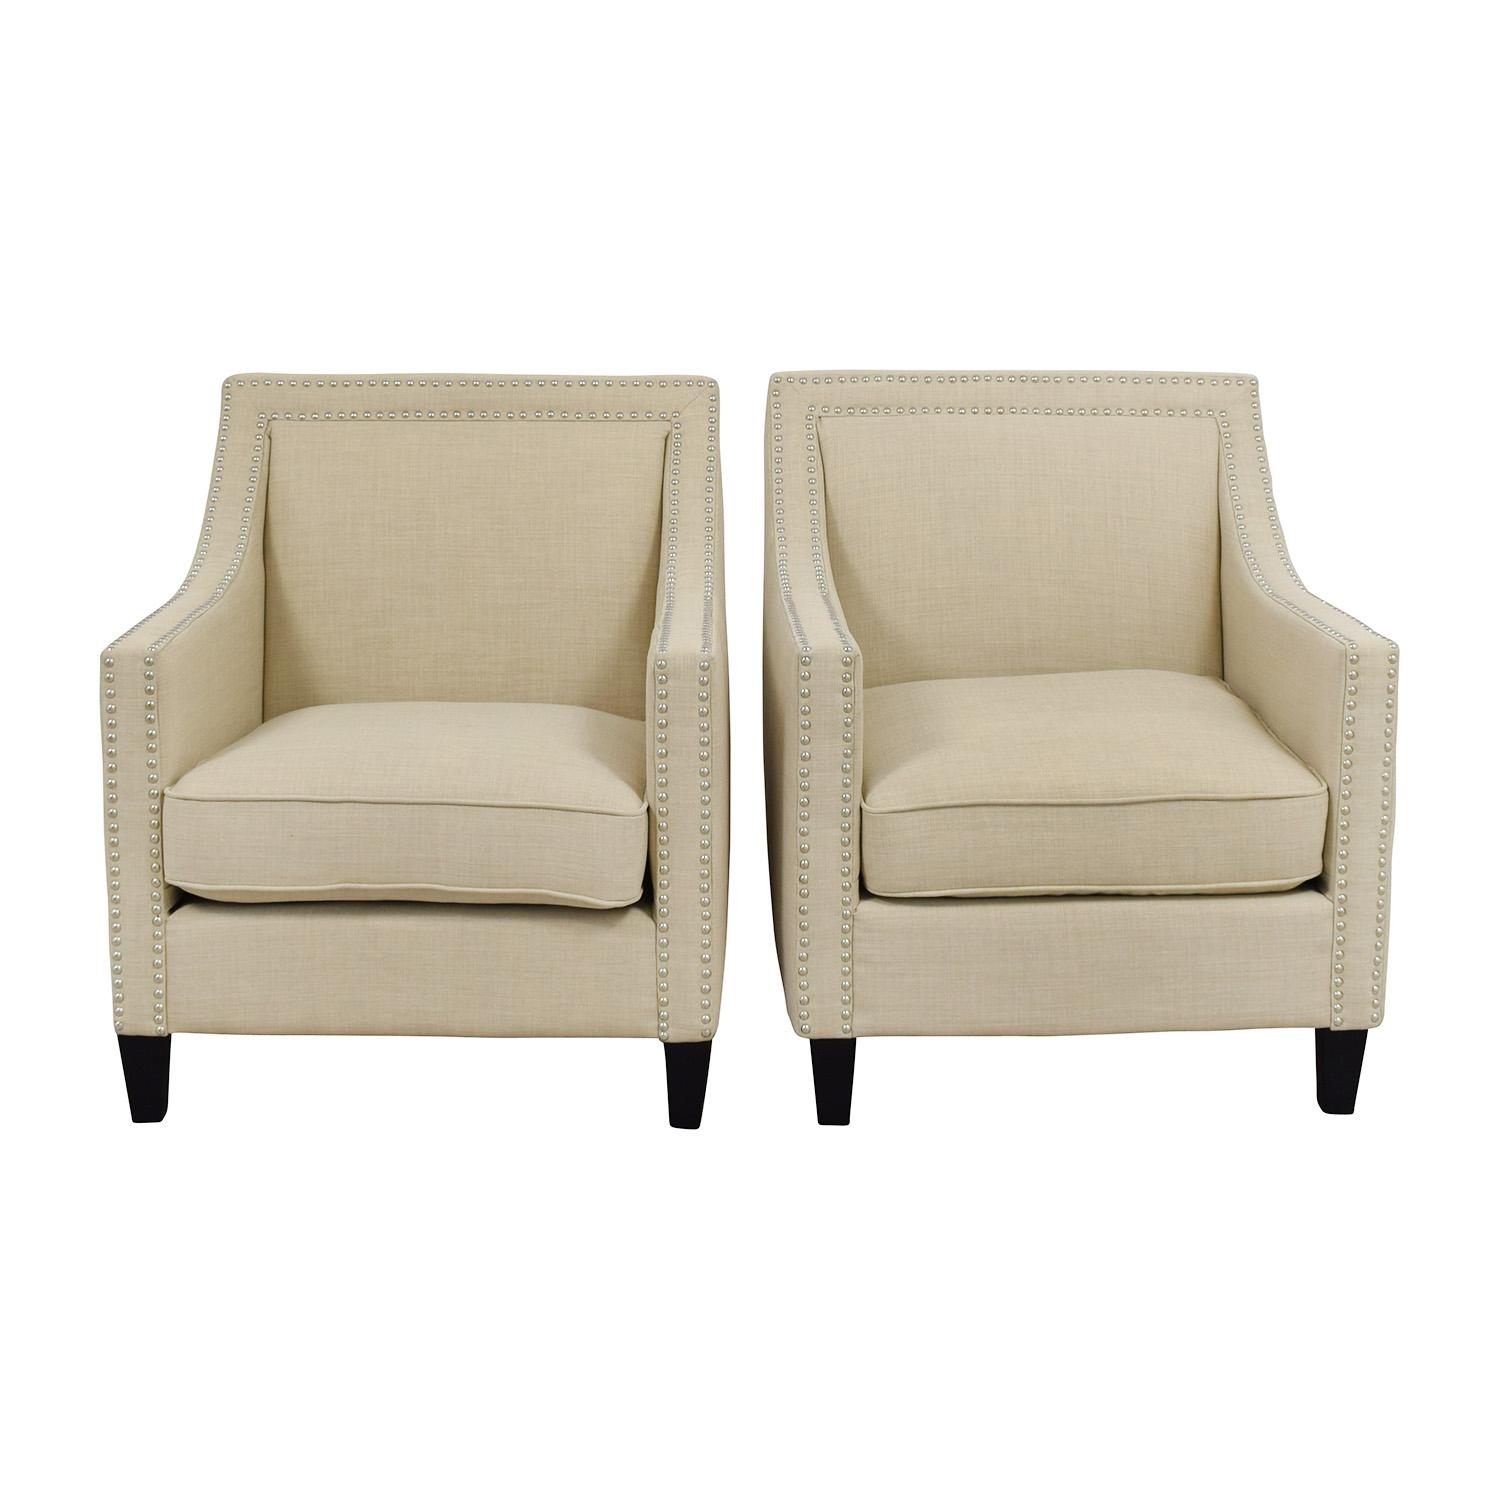 67% Off - Studded Beige Sofa Arm Chairs / Chairs pertaining to Sofa Arm Chairs